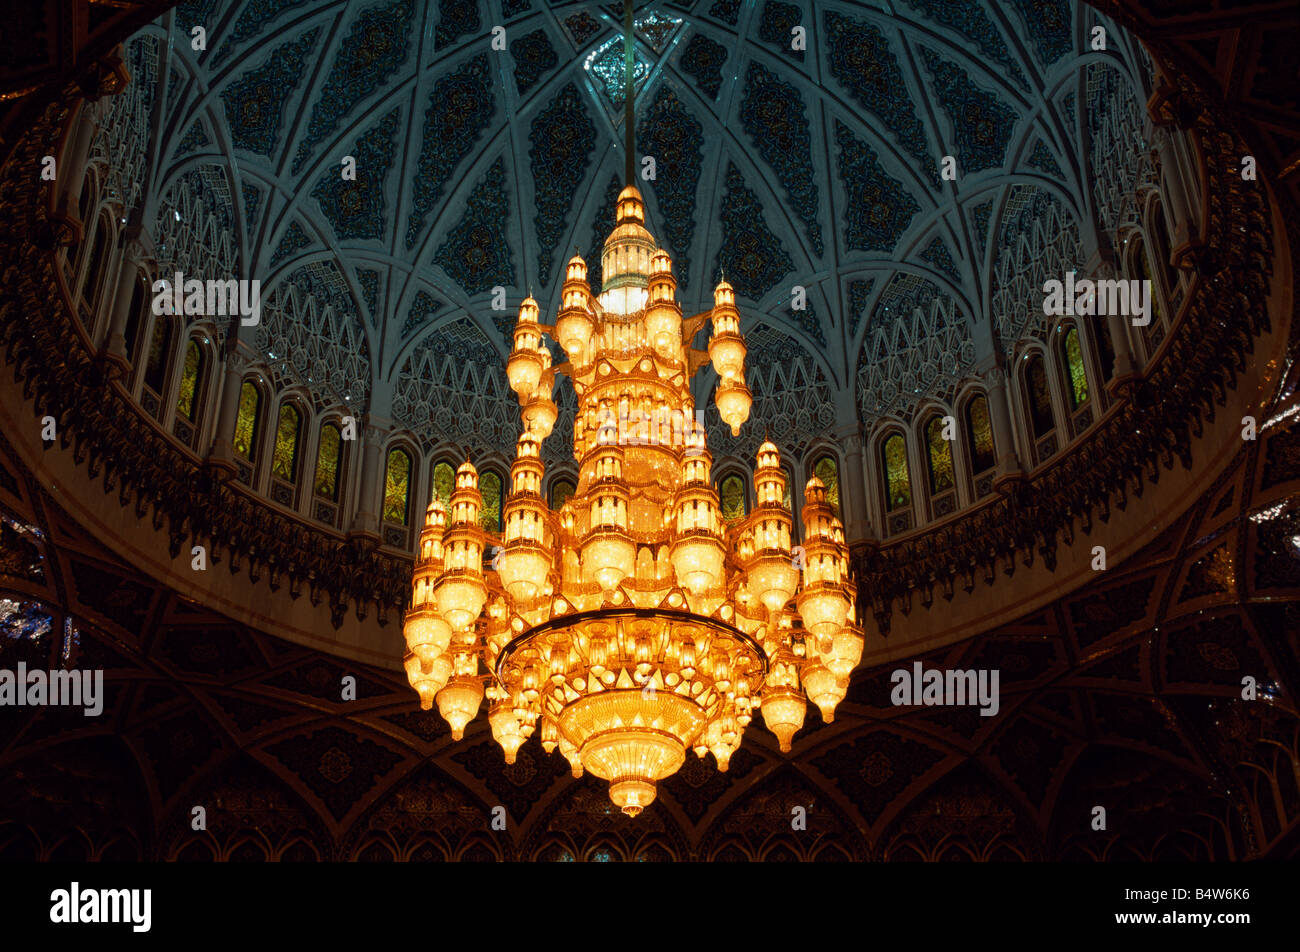 Grand Mosque In Oman Luxury Interior Cupola With Chandelier Stock Photo 11672963